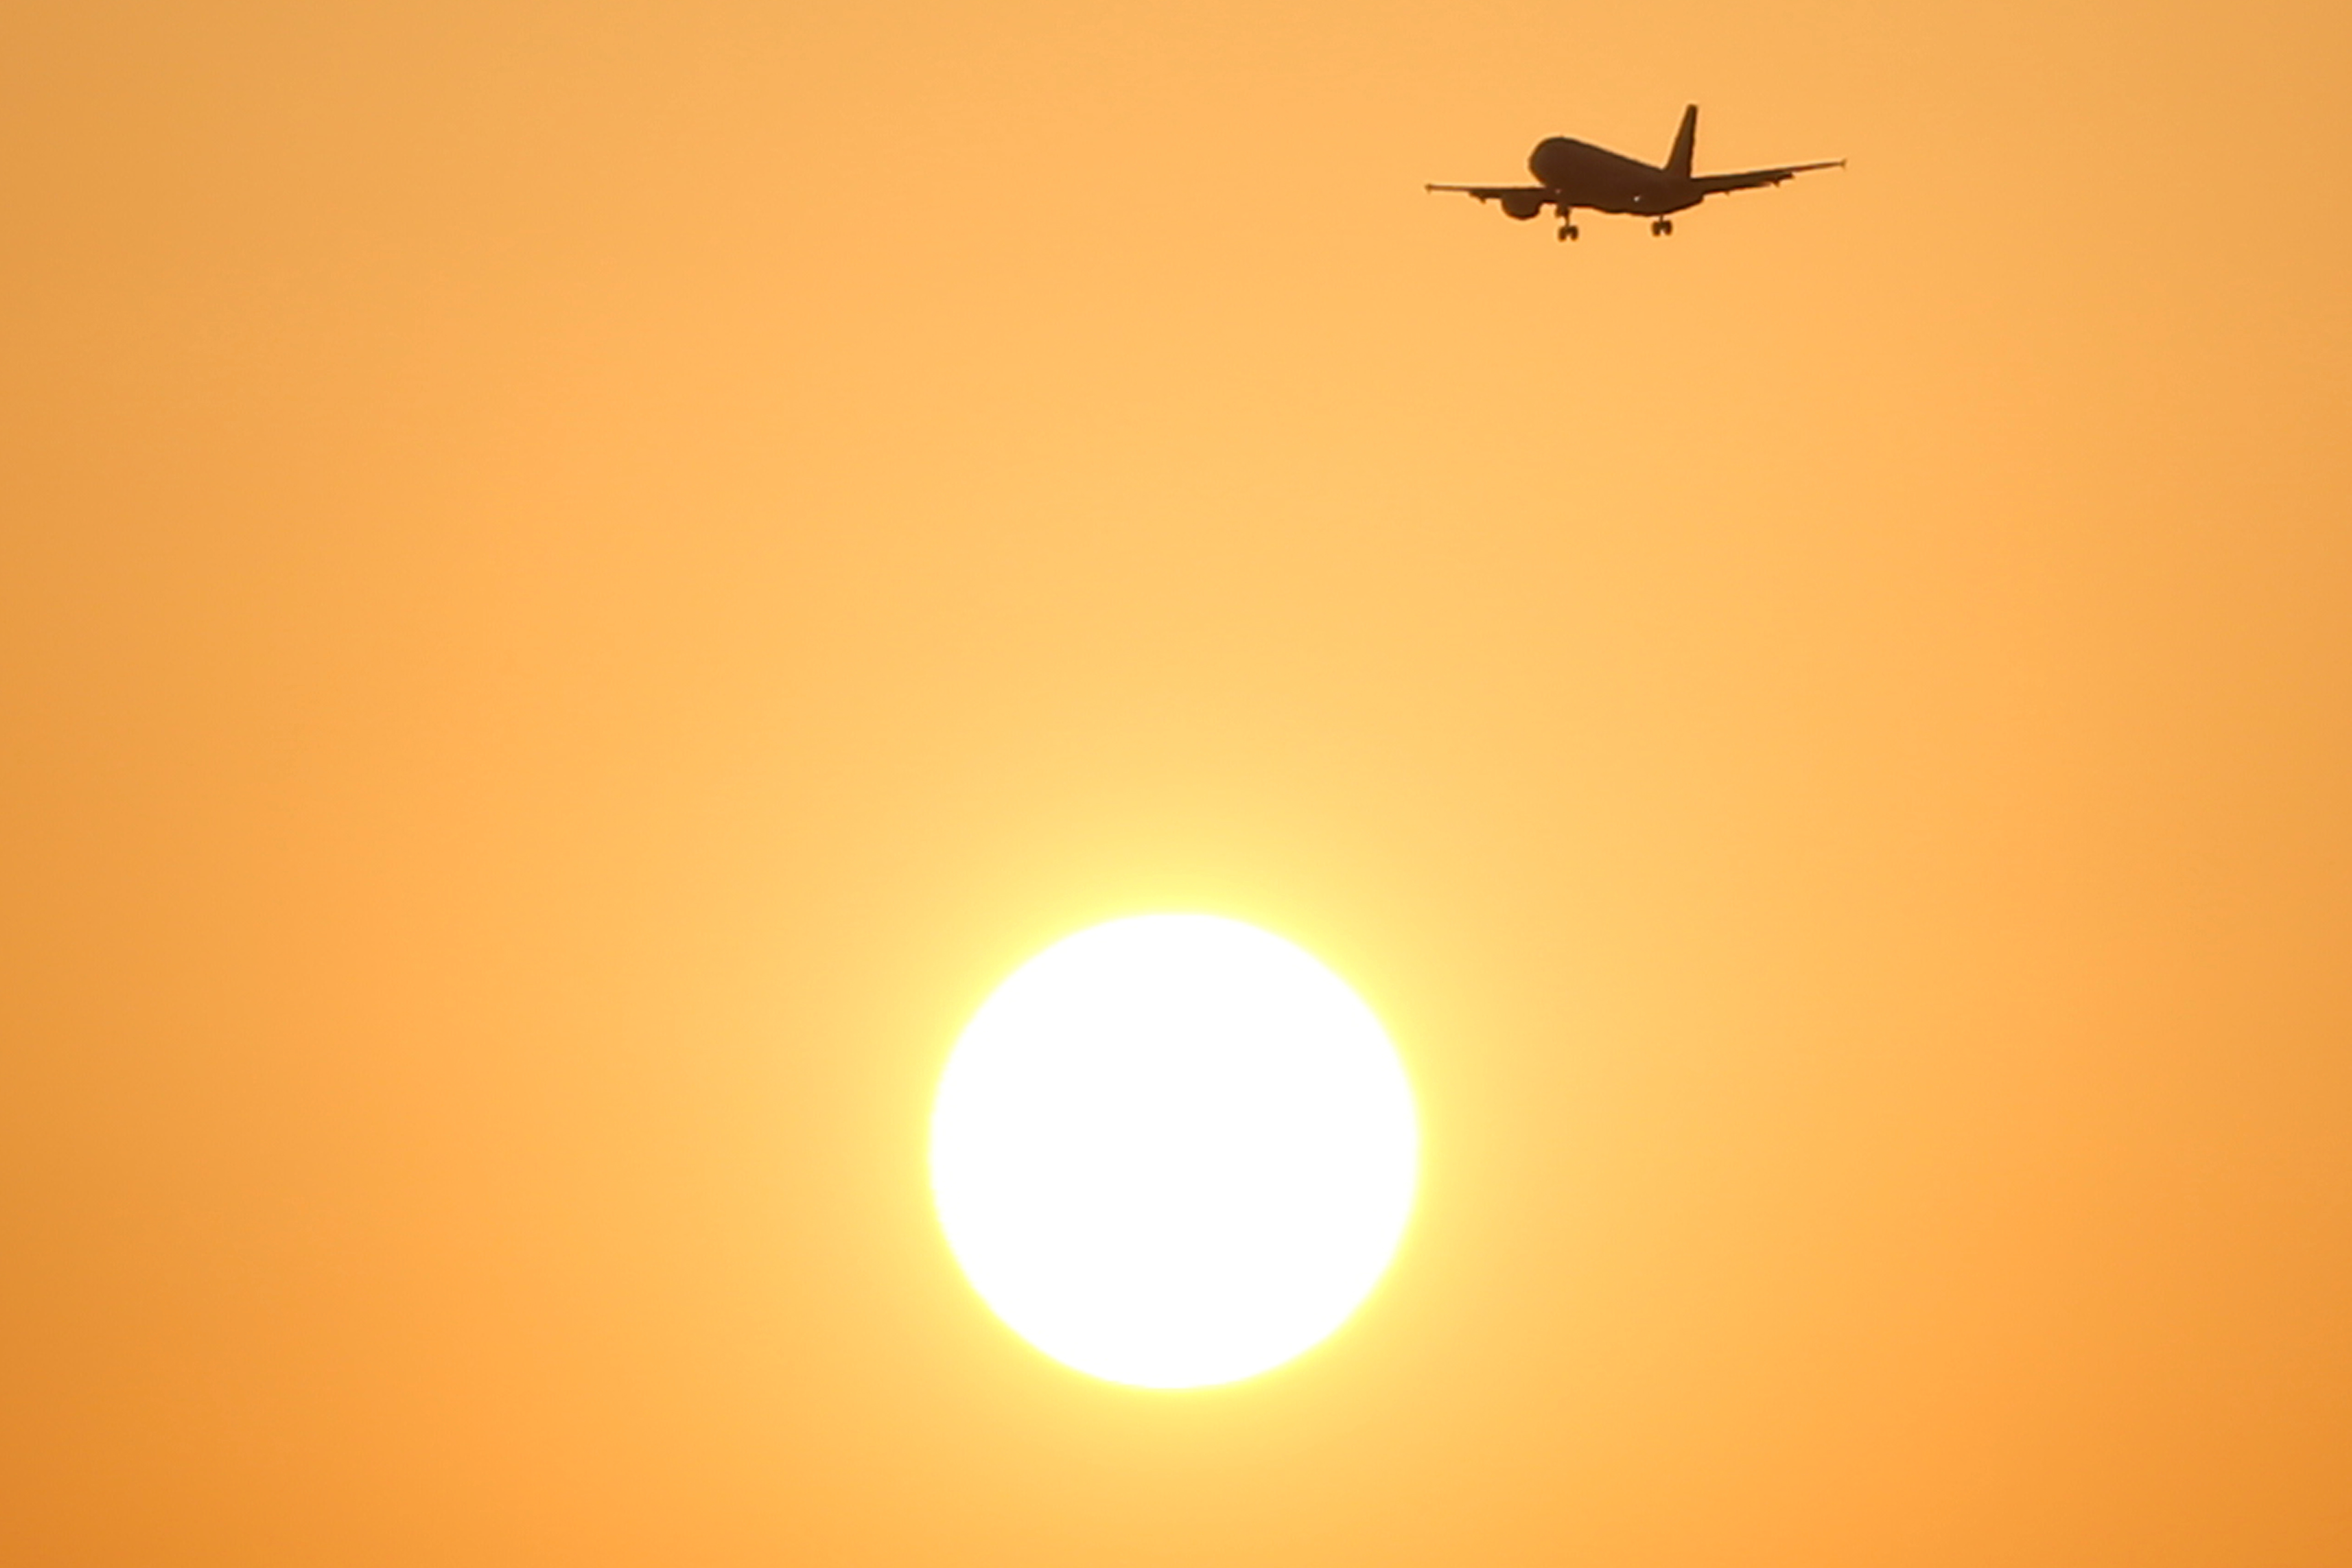 A passenger aircraft flies past the sun at sunset in Malaga, southern Spain, August 3, 2018. REUTERS/Jon Nazca/Files